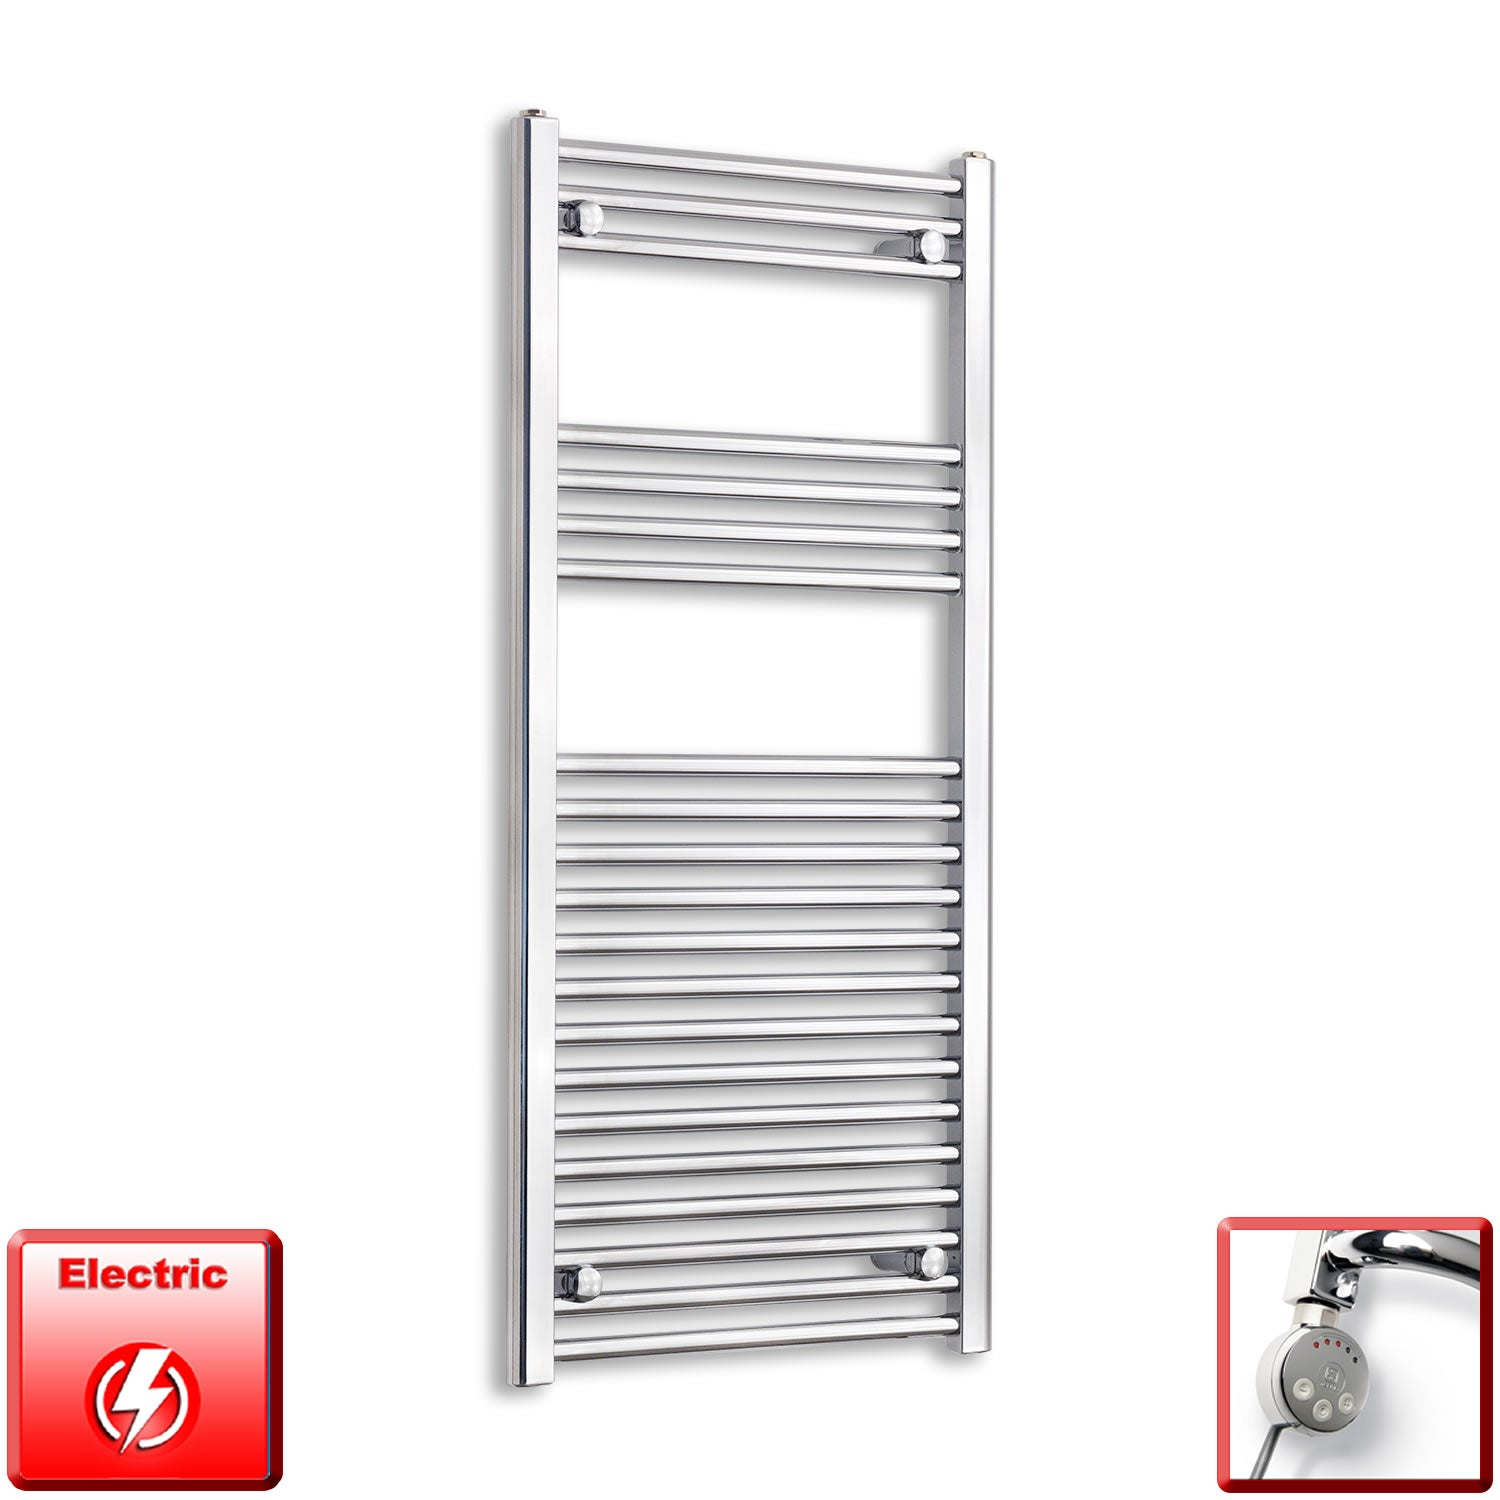 450mm Wide 1100mm High Pre-Filled Black Electric Towel Rail Radiator With Thermostatic MEG Element